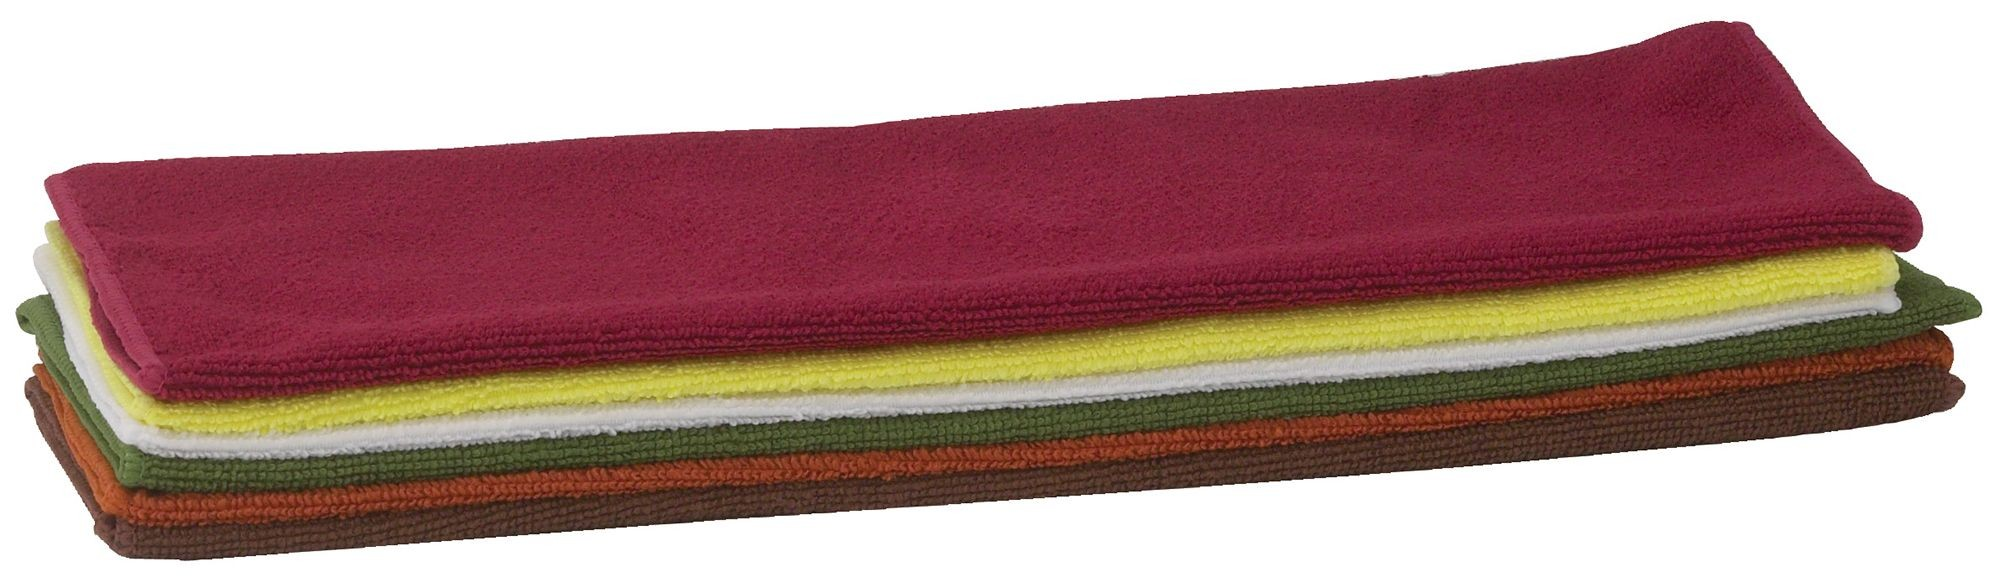 Microfiber Bar Towel, 16